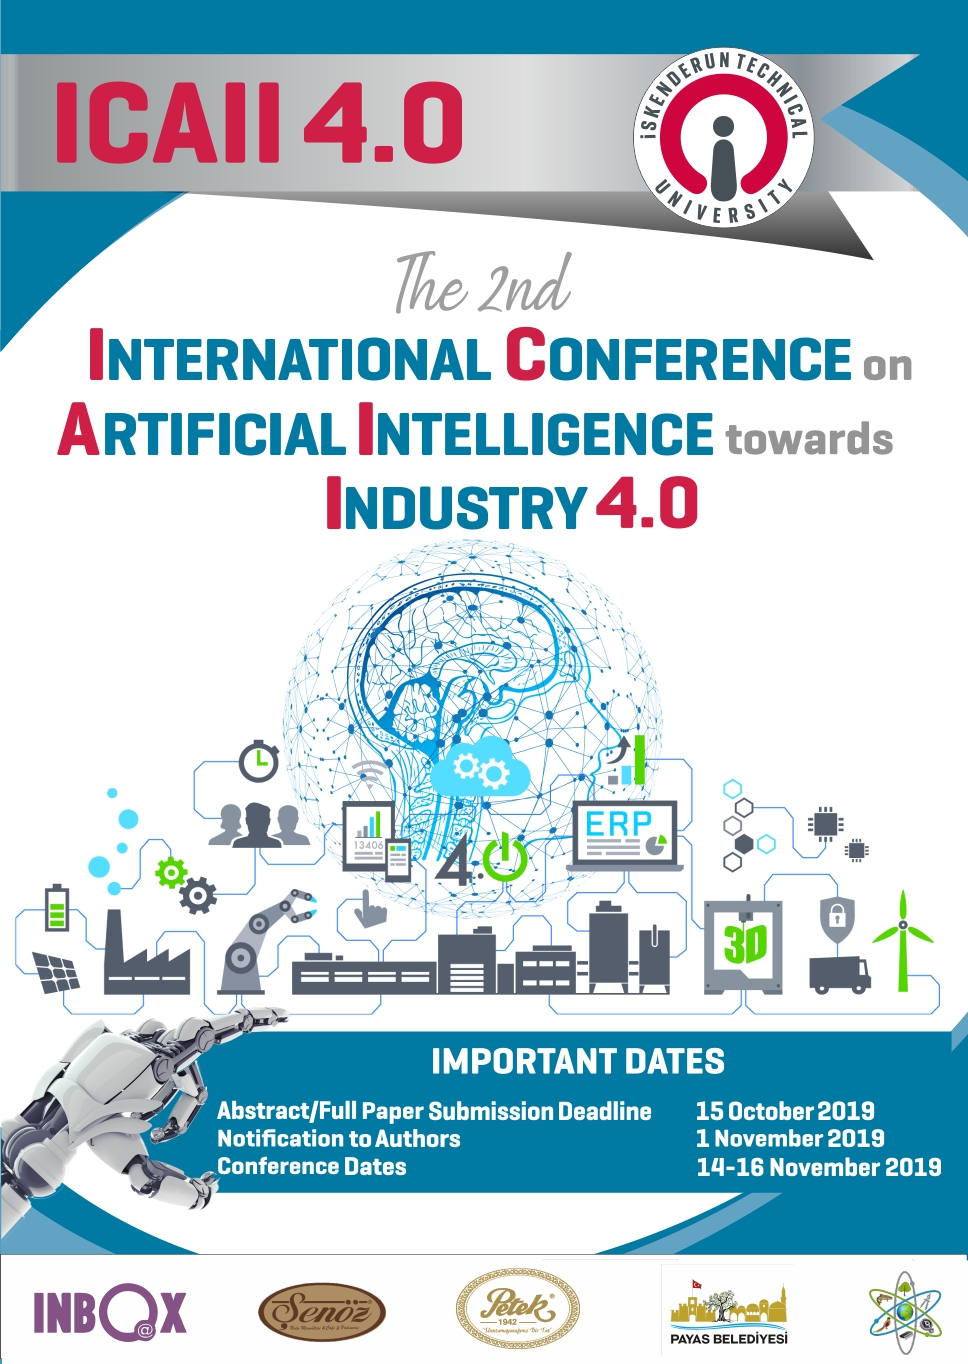 International Conference on Artificial Intelligence towards Industry 4.0 afişi